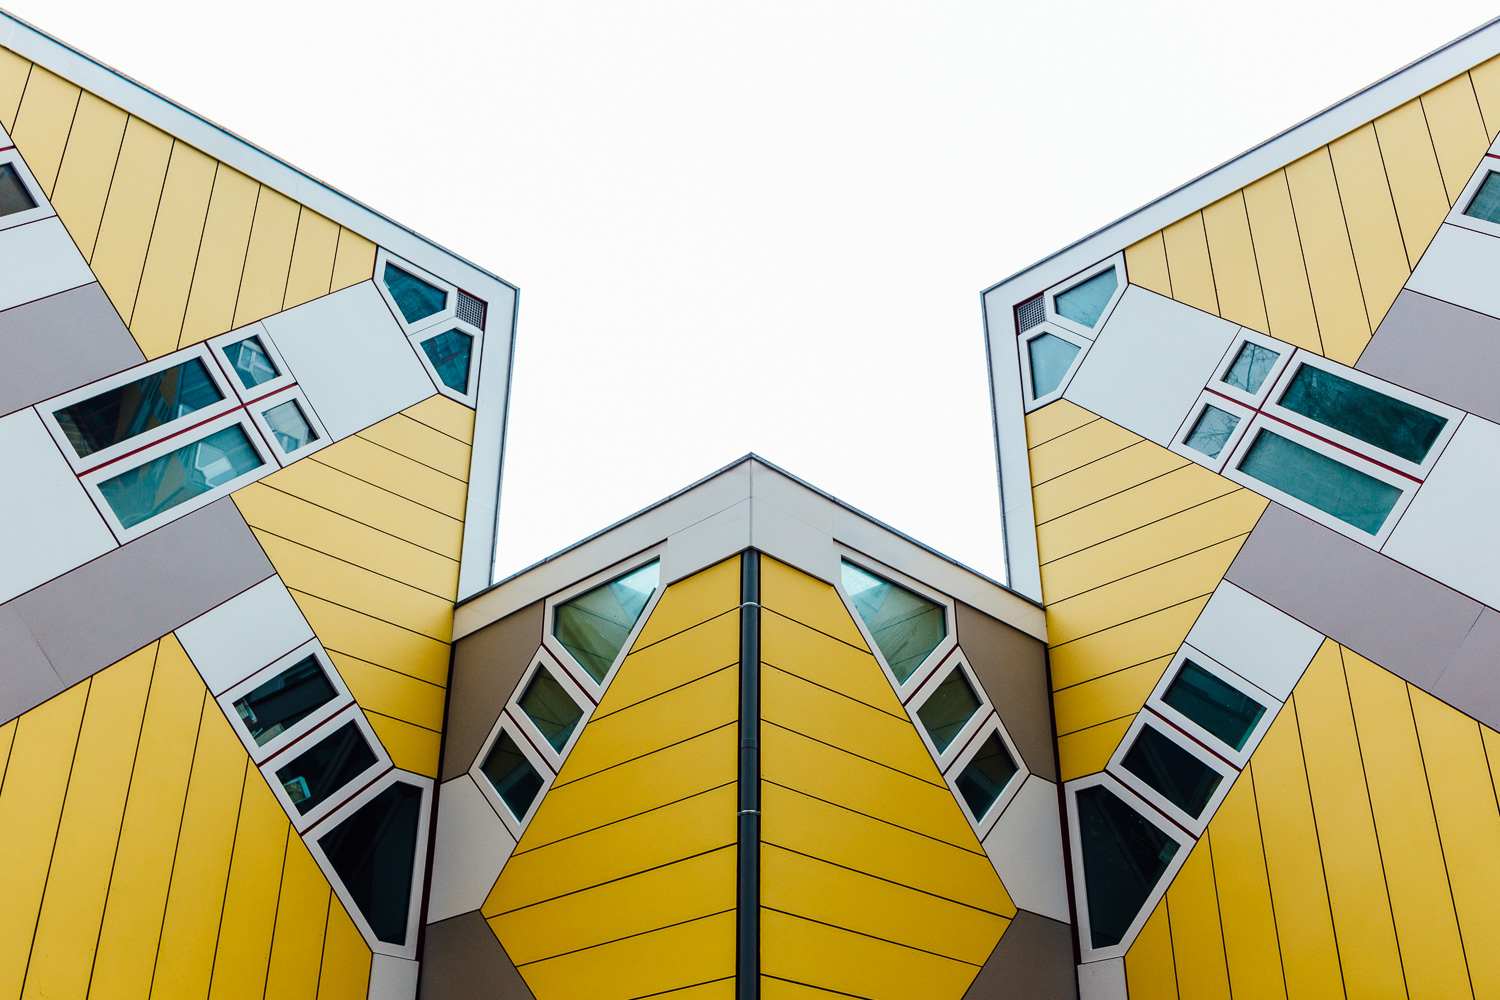 Yellow-Building-Durazo-Photography-Project-Travel-Architecture.jpg